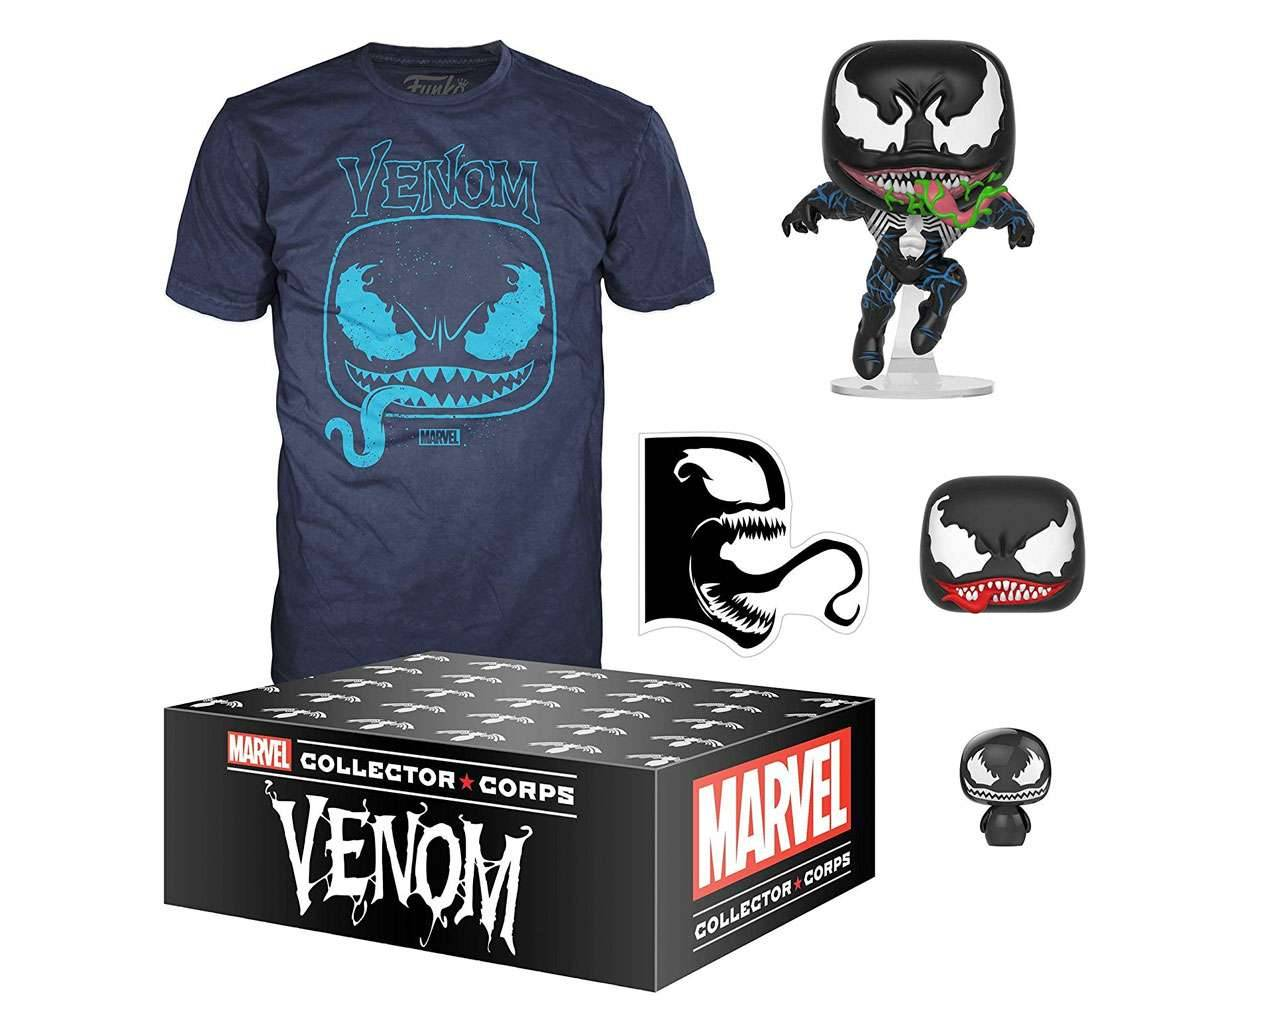 Venom Box (Collector Corps)